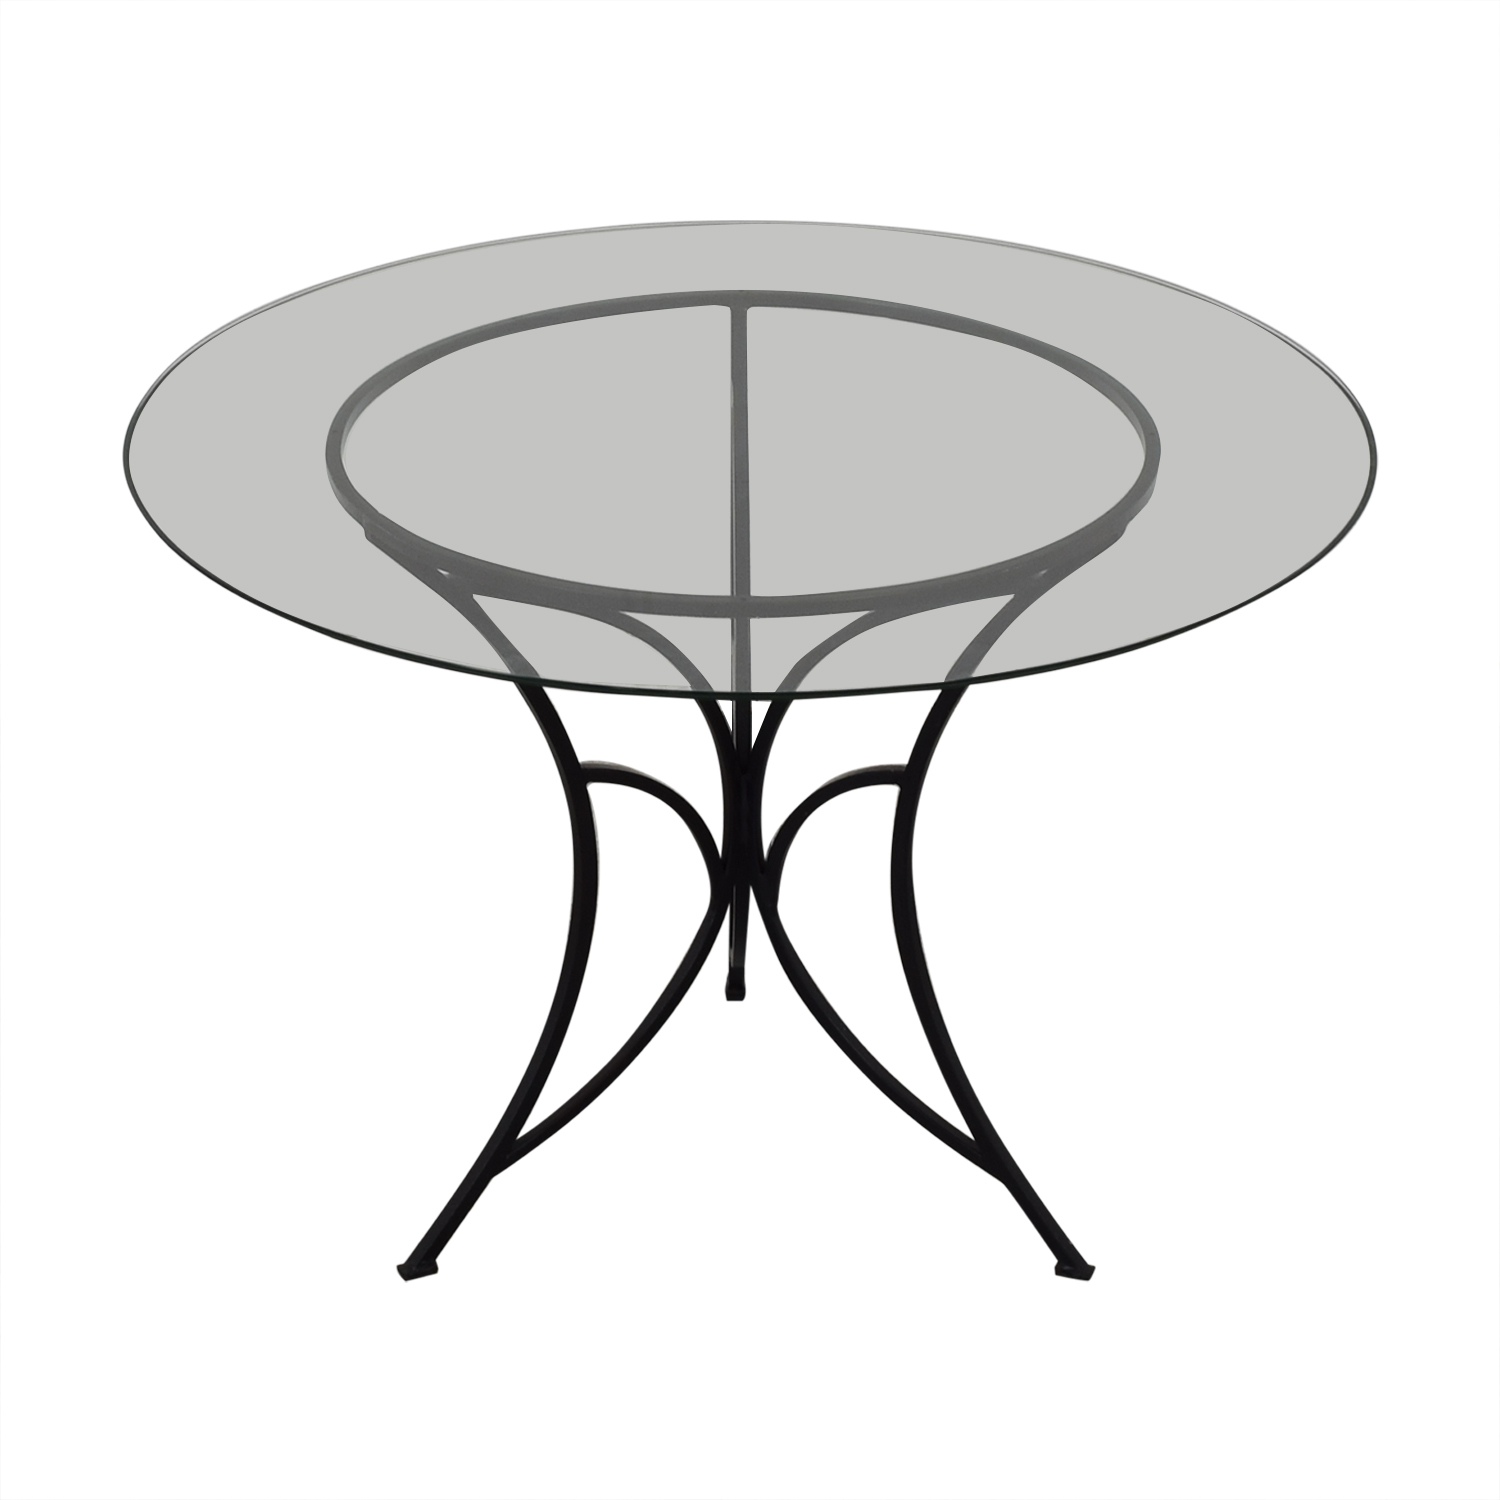 Pier 1 Pier One Glass Top Dining Table nj